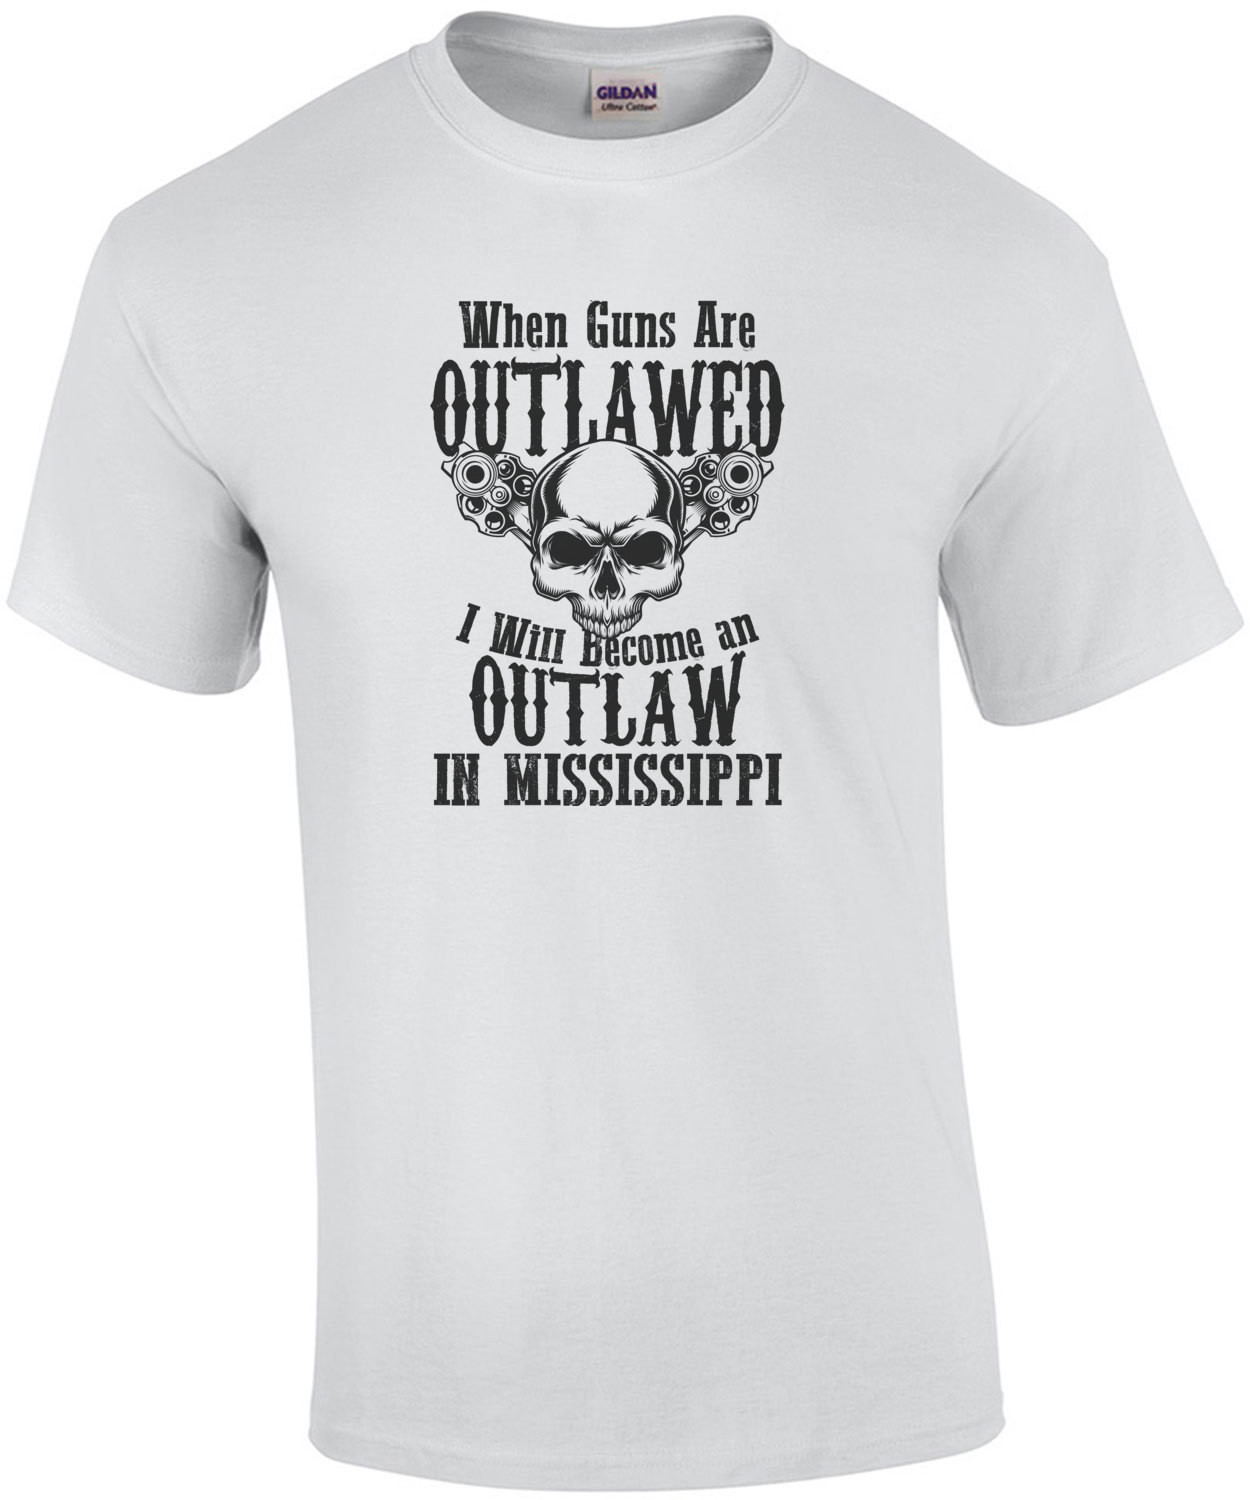 When guns are outlawed I will become an outlaw in Mississippi - Mississippi T-Shirt